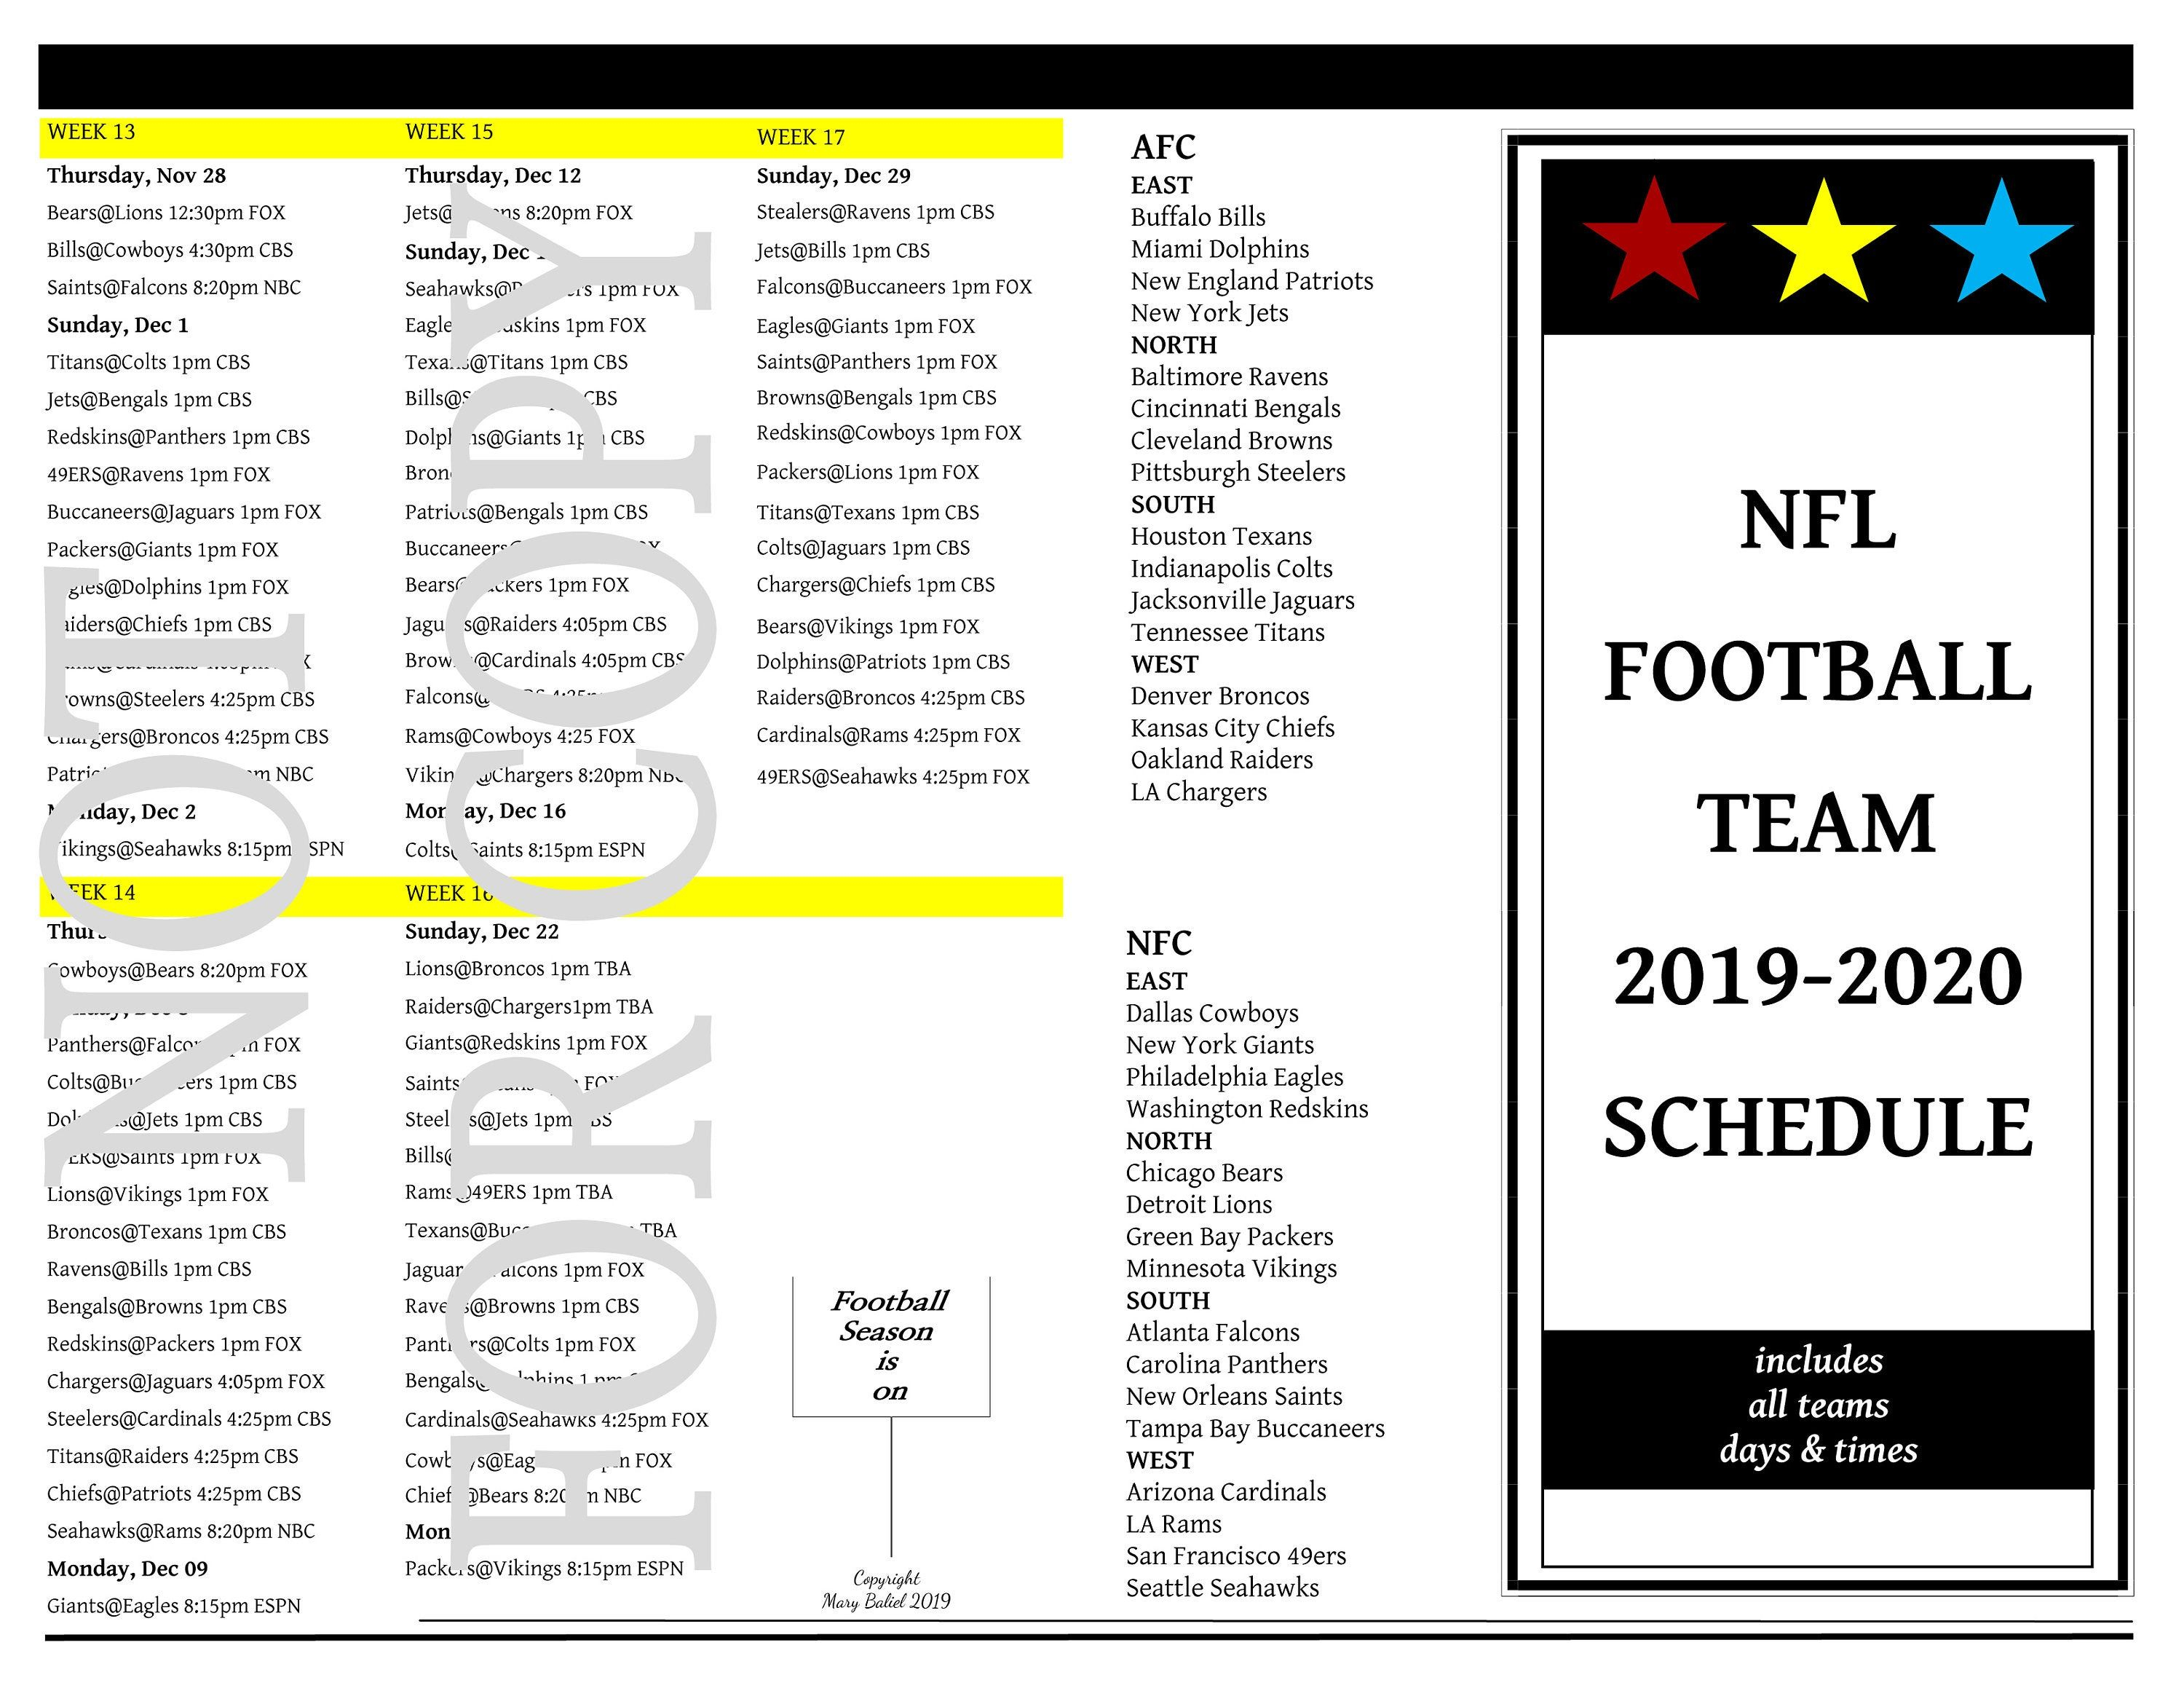 Nfl Custom 2019-2020 Football Schedule | All Nfl Teams, Nfl within Free Printable Nfl Schedule 2020 2020